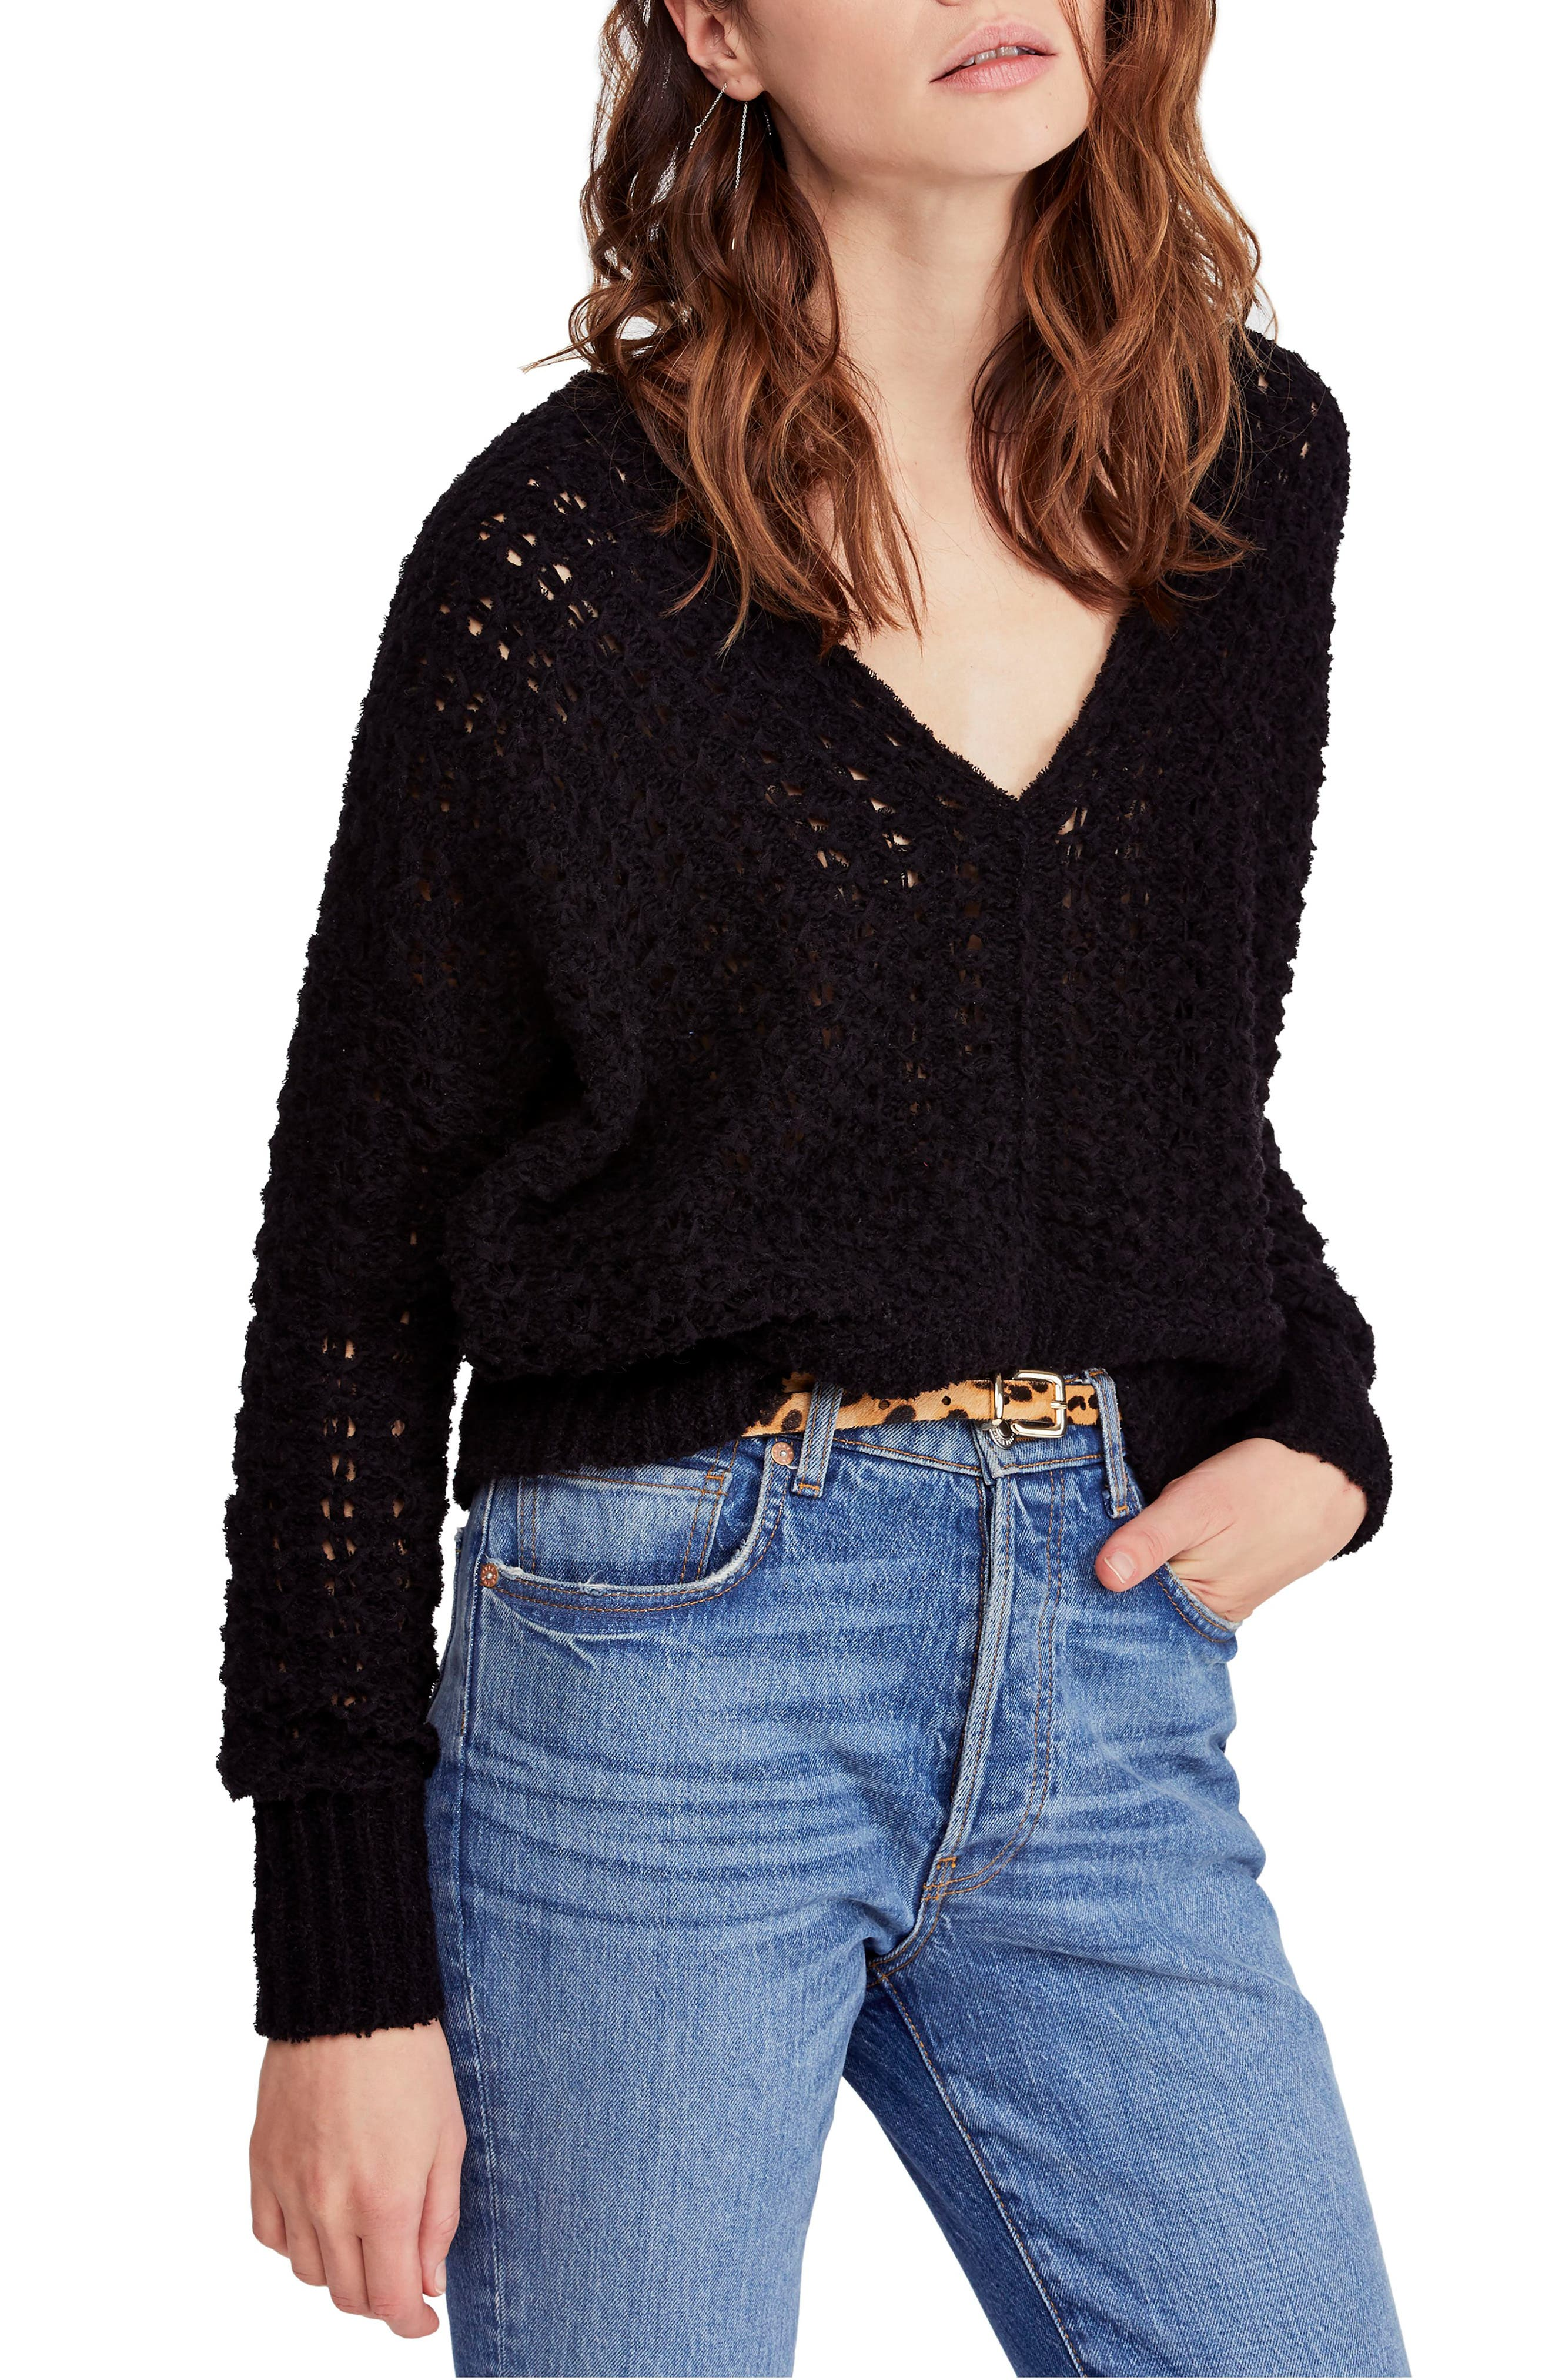 FREE PEOPLE, Best of You Sweater, Main thumbnail 1, color, BLACK